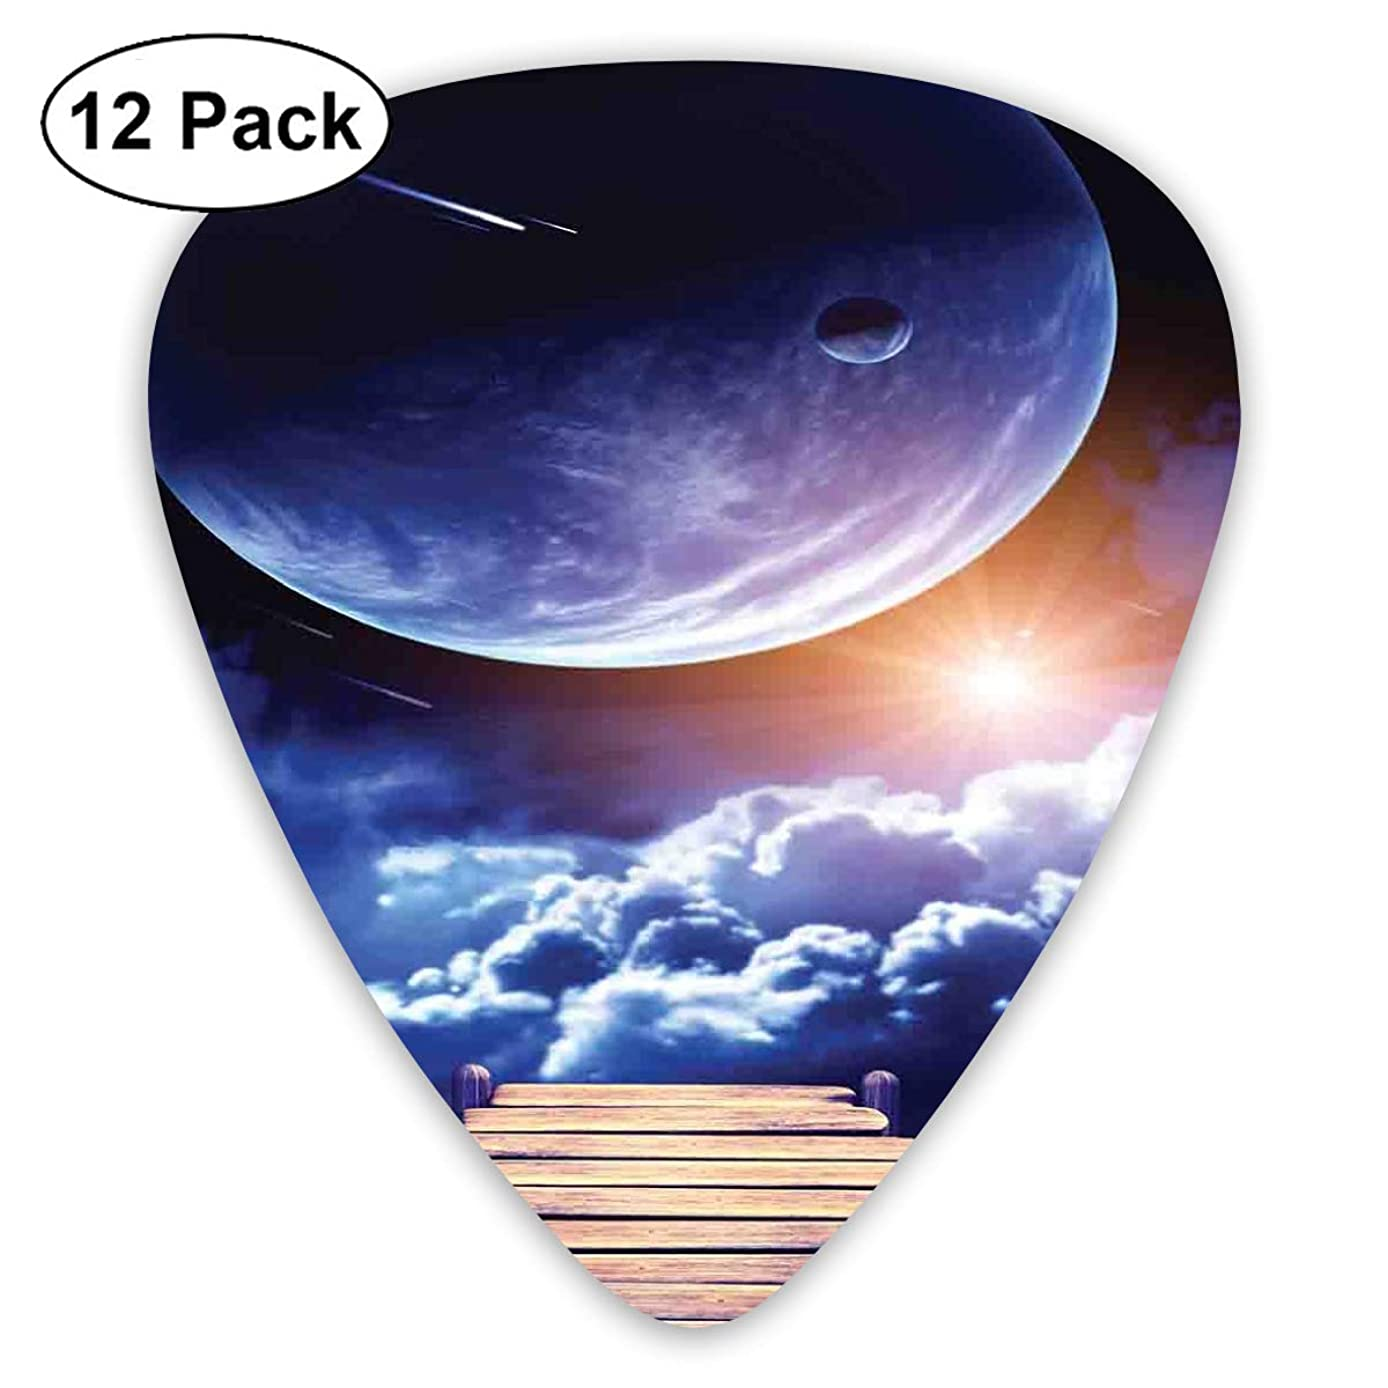 Guitar Picks - Abstract Art Colorful Designs,Watching A Meteor Rain From A Wooden Dock Under The Sun Rays Image,Unique Guitar Gift,For Bass Electric & Acoustic Guitars-12 Pack